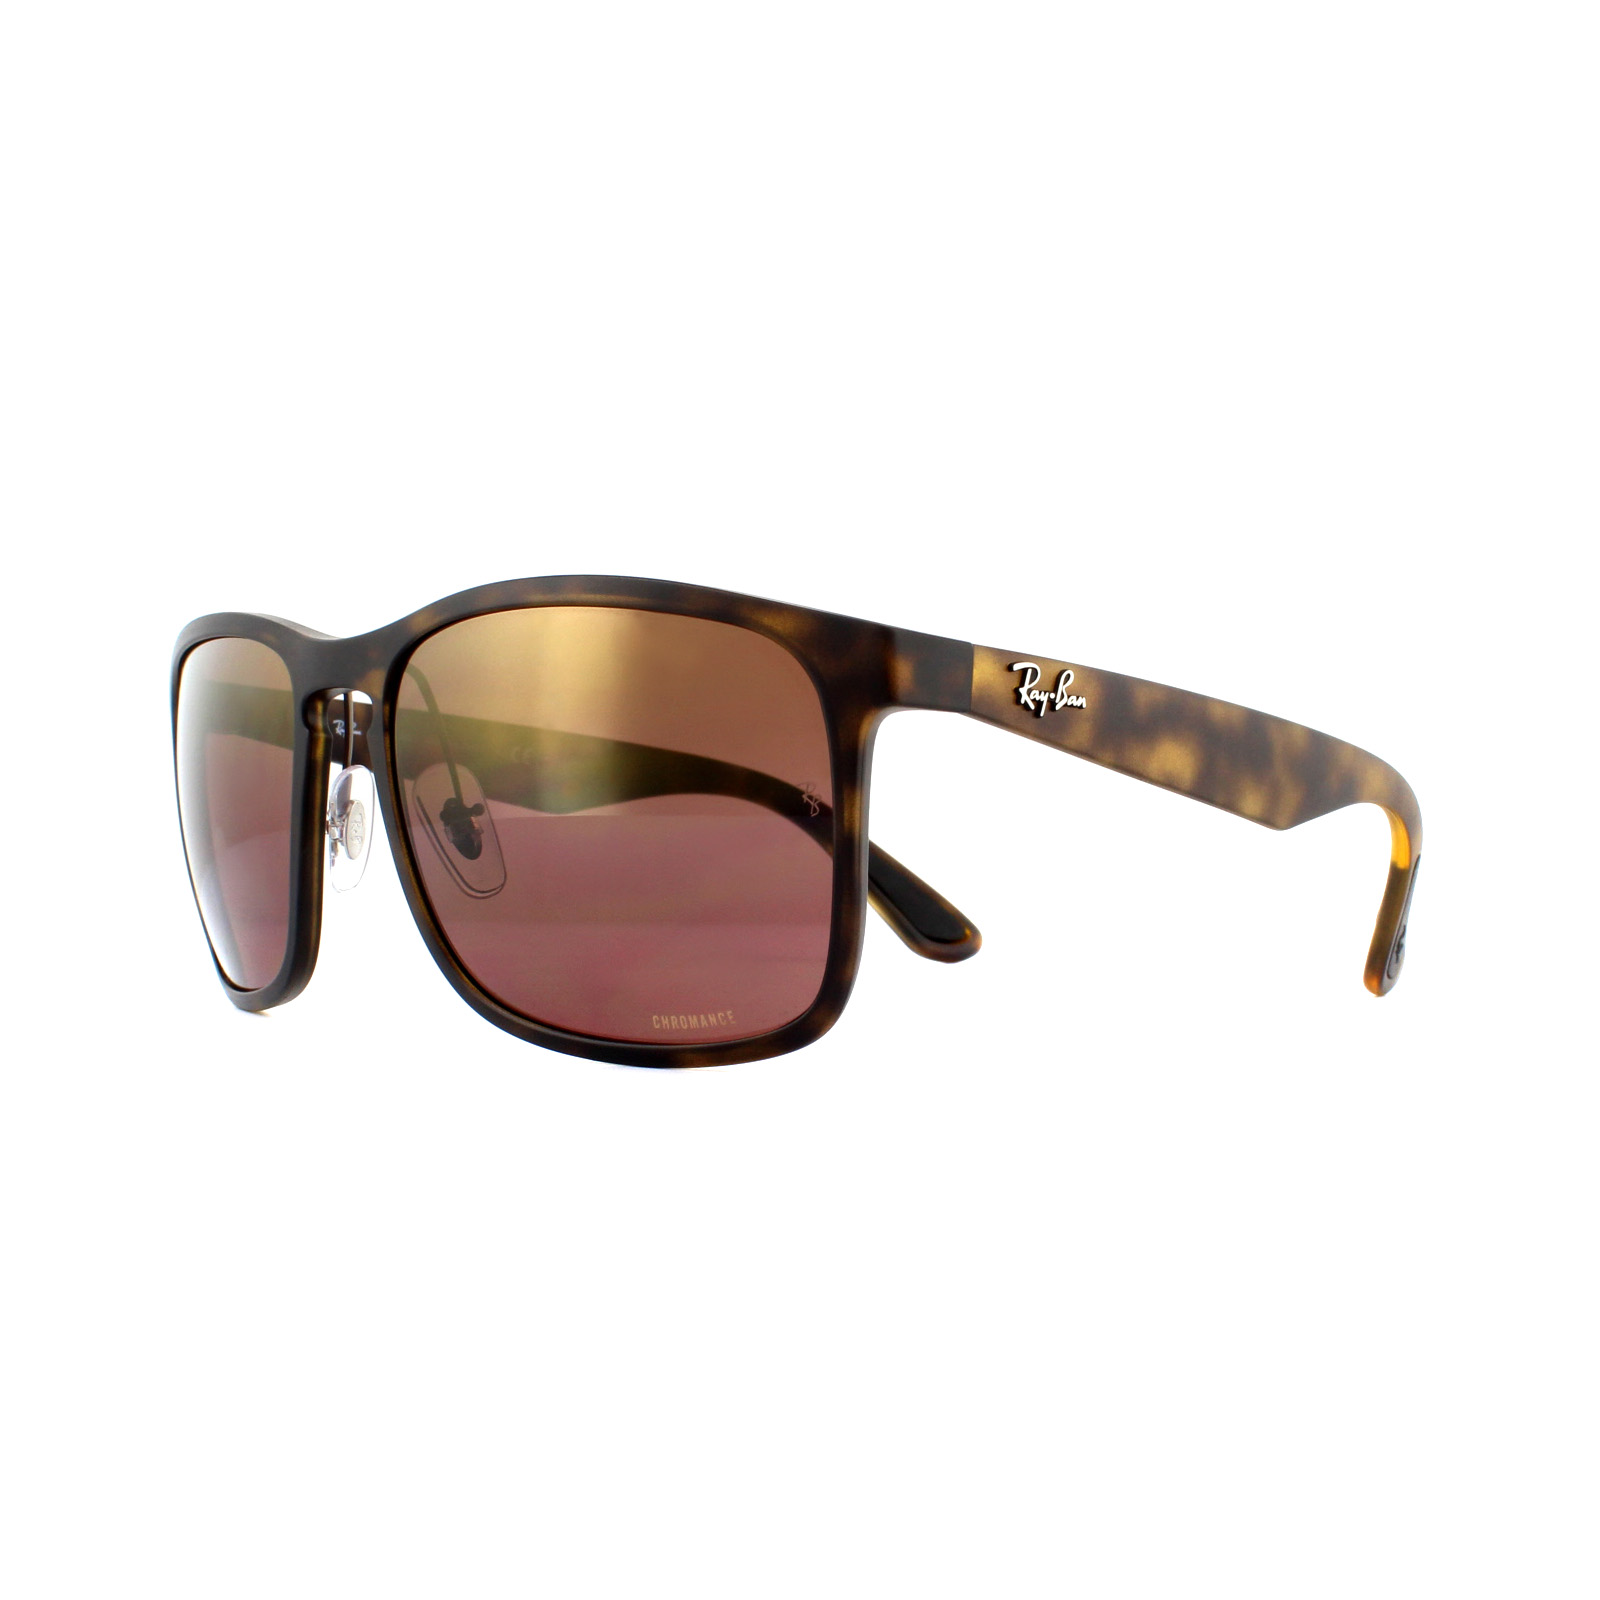 6c901729a35ef Sentinel Ray-Ban Sunglasses RB4264 894 6B Matte Havana Brown Polarized  Mirror Chromance